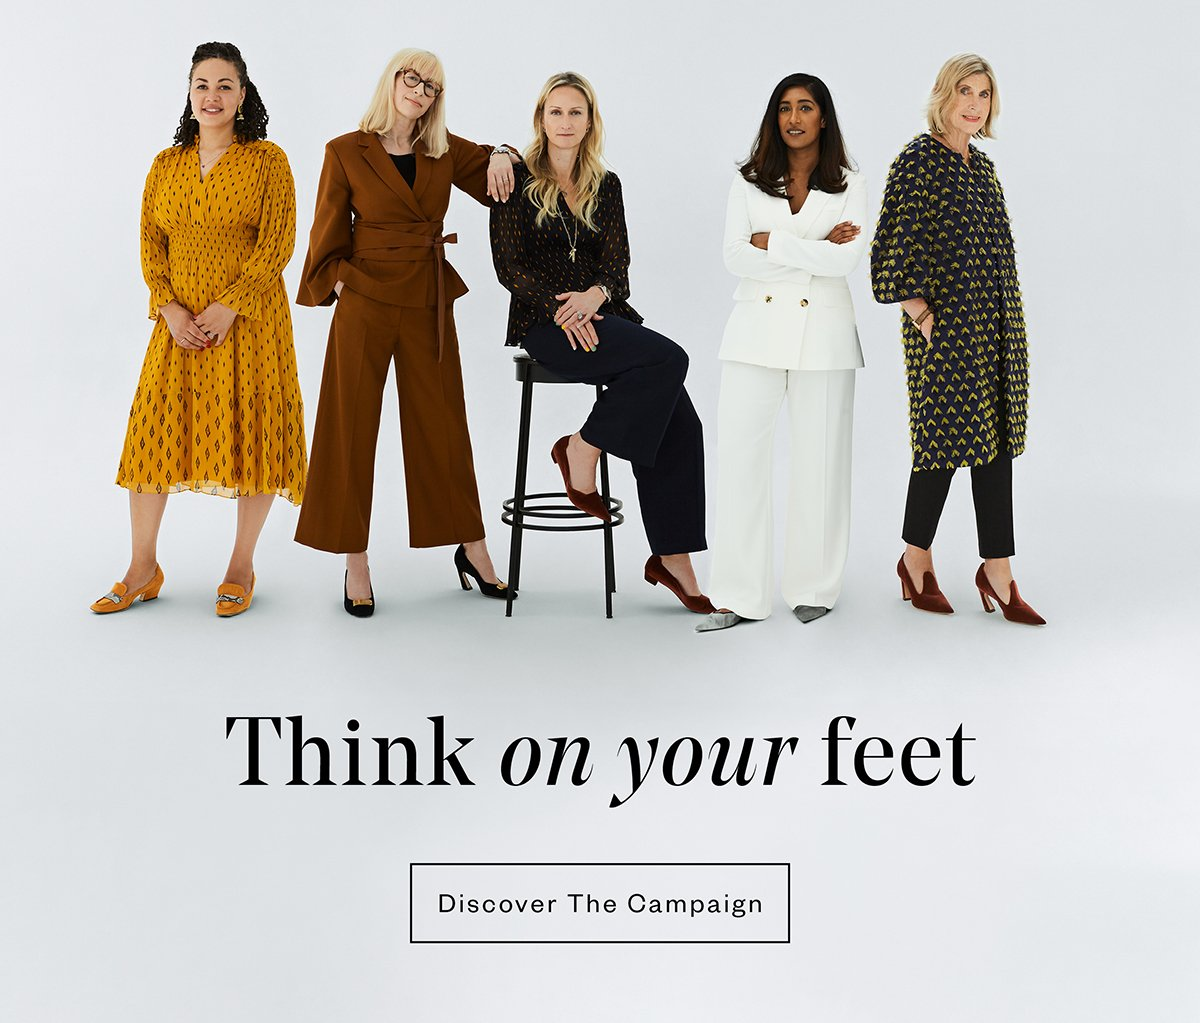 Discover The Campaign